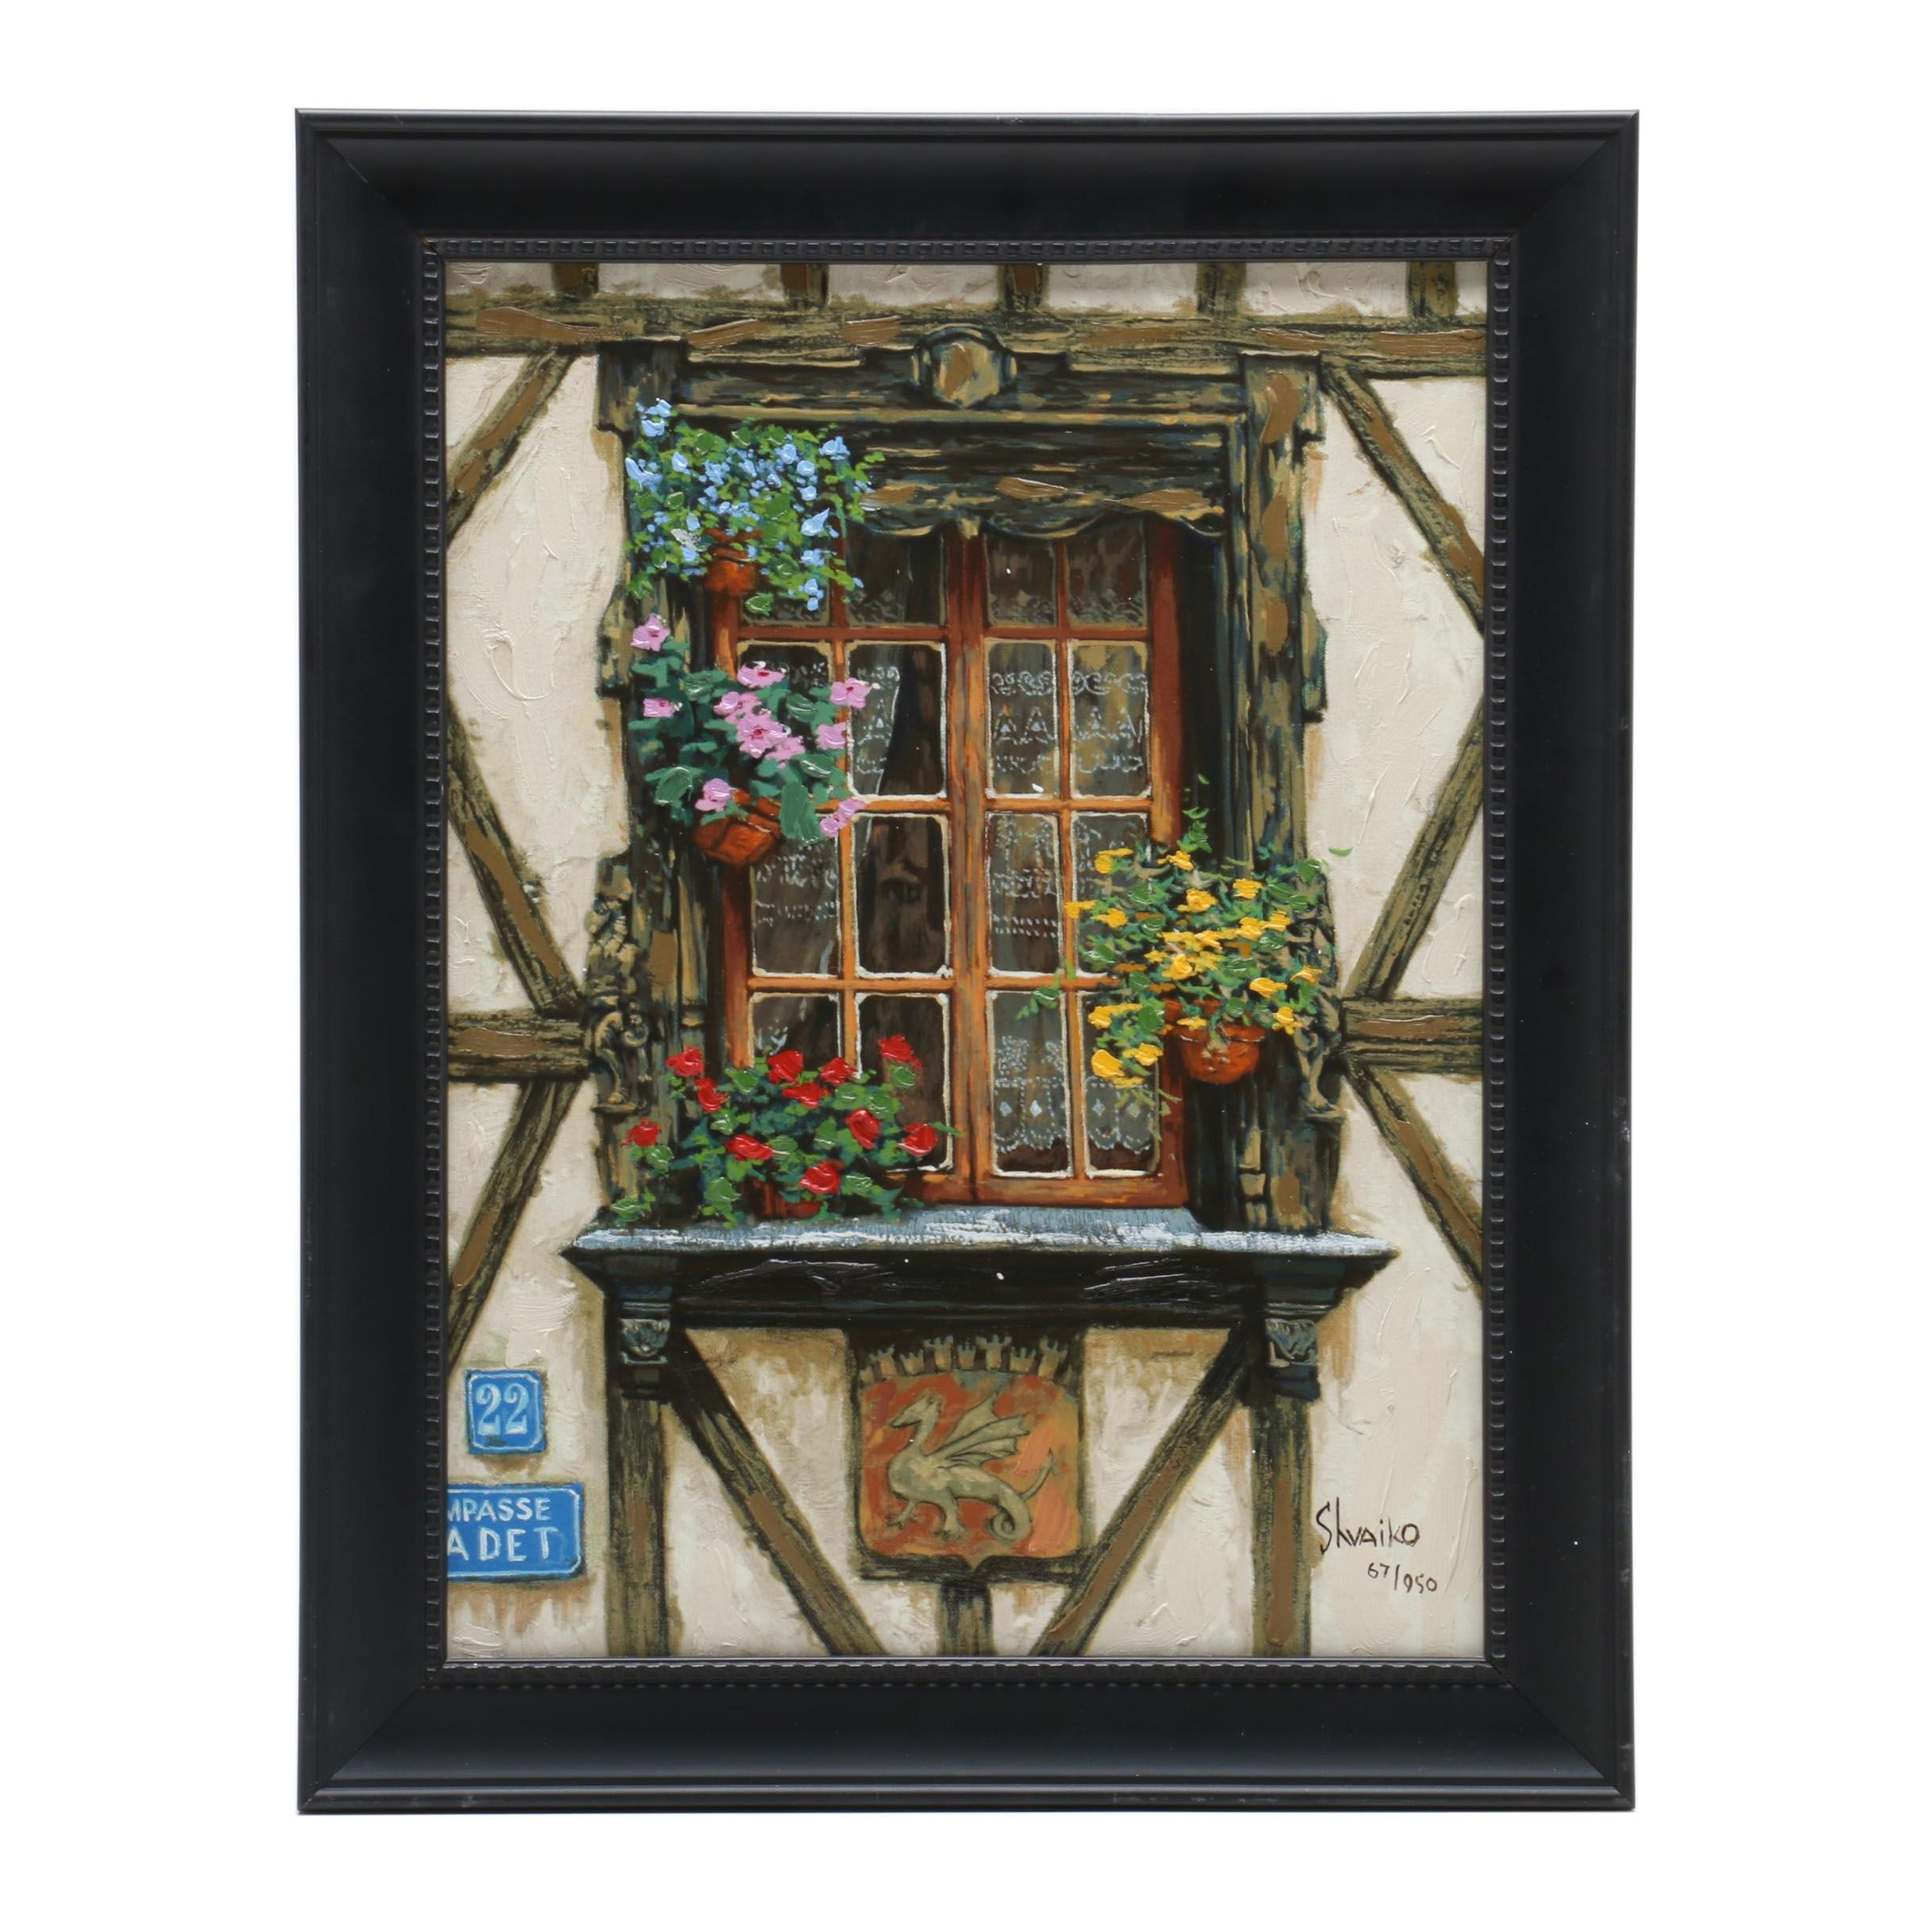 Viktor Shvaiko Hand Embellished Giclee Print of Window with Potted Plants